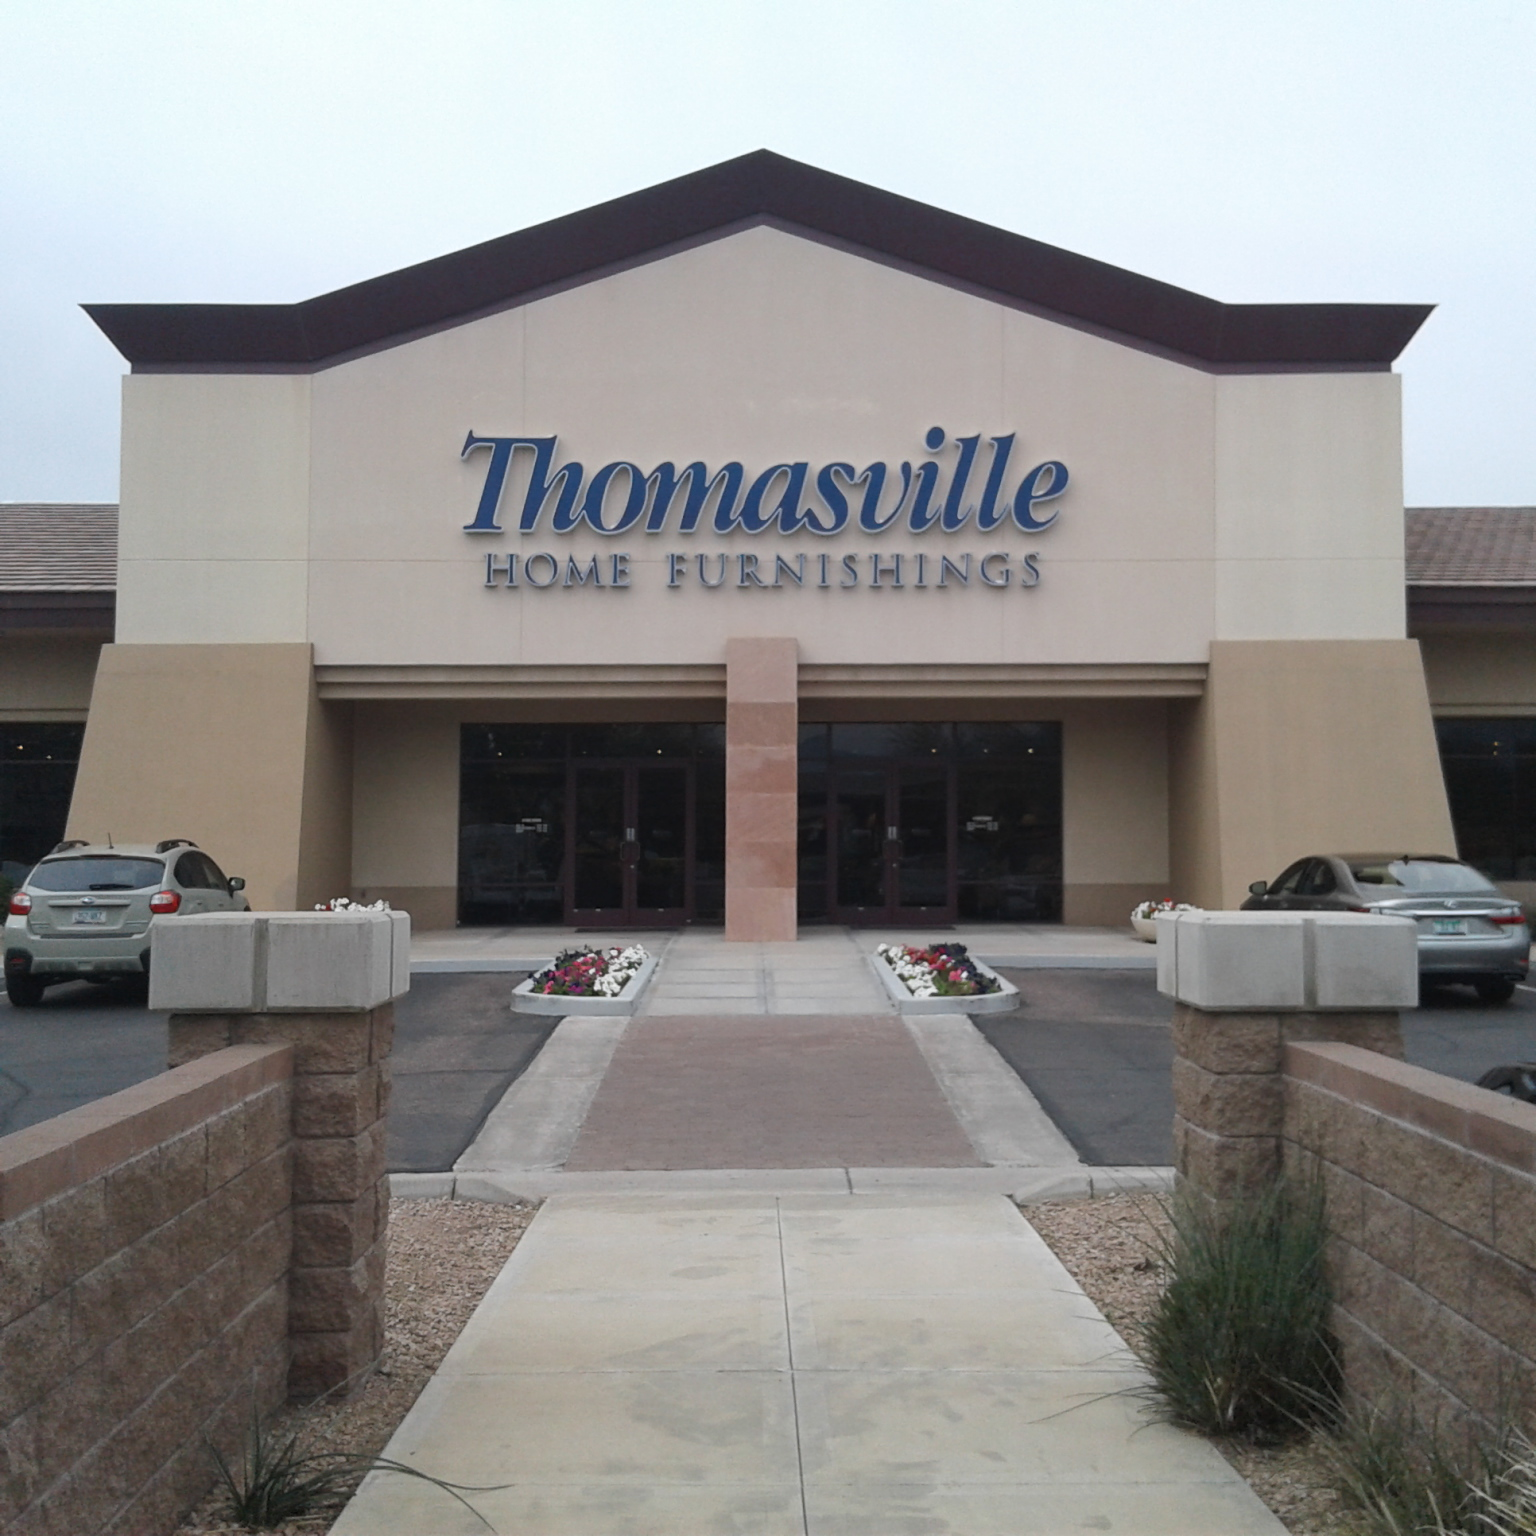 Thomasville Home Furnishings Of Scottsdale Scottsdale, AZ